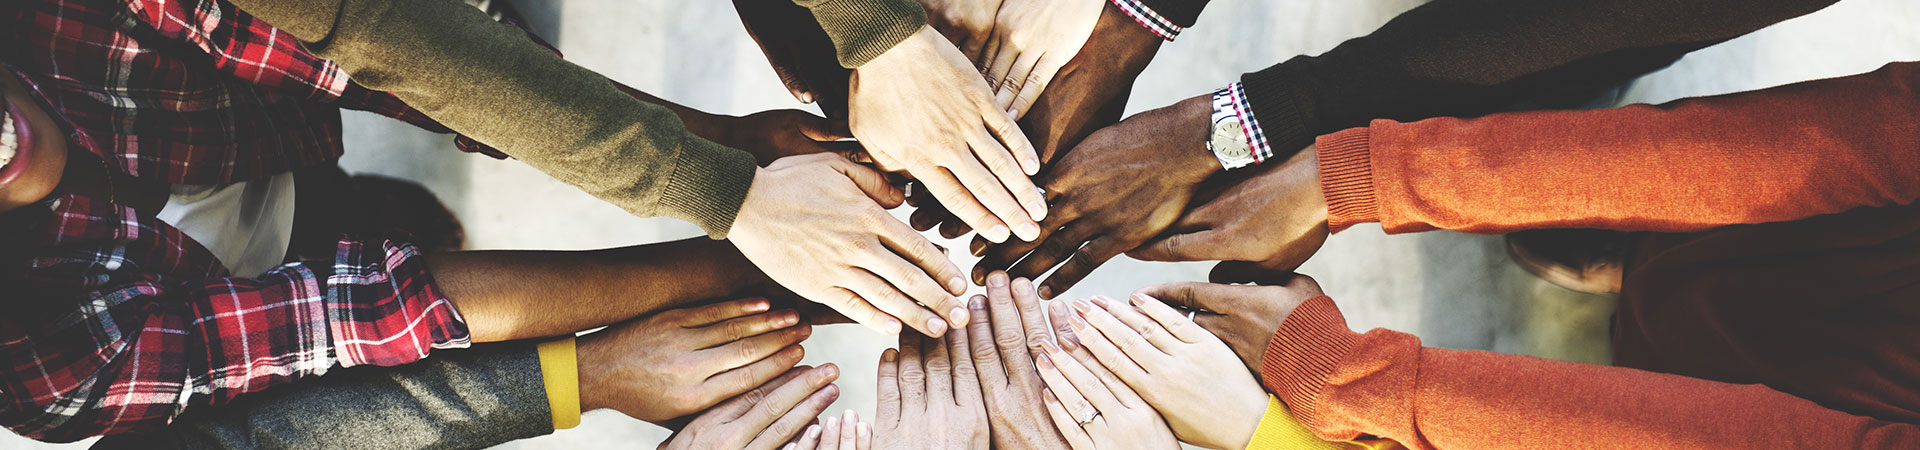 the importance of giving back to your community essay Learn why it is so important that you have volunteering and community service on your resume  it's good for the world to give back and make time to help others.